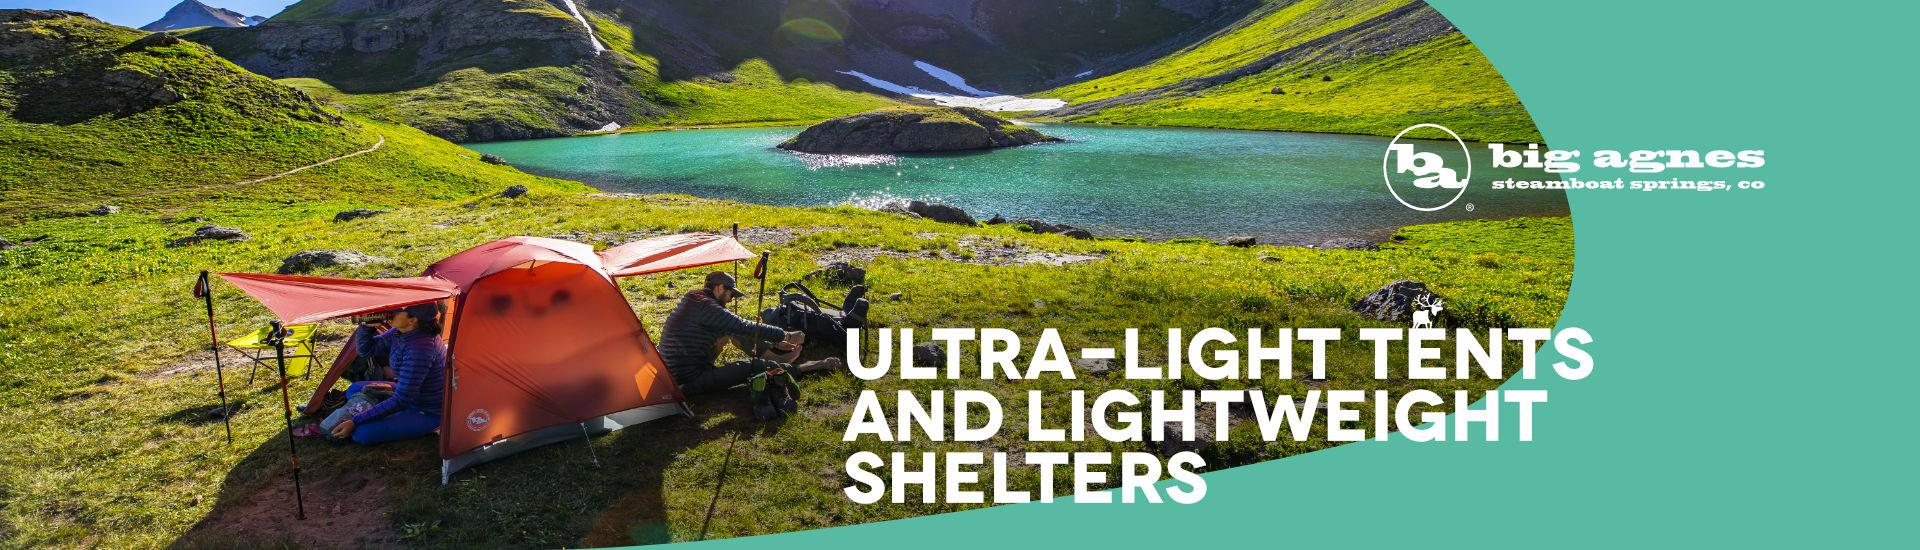 Ultralight tents Big Agnes